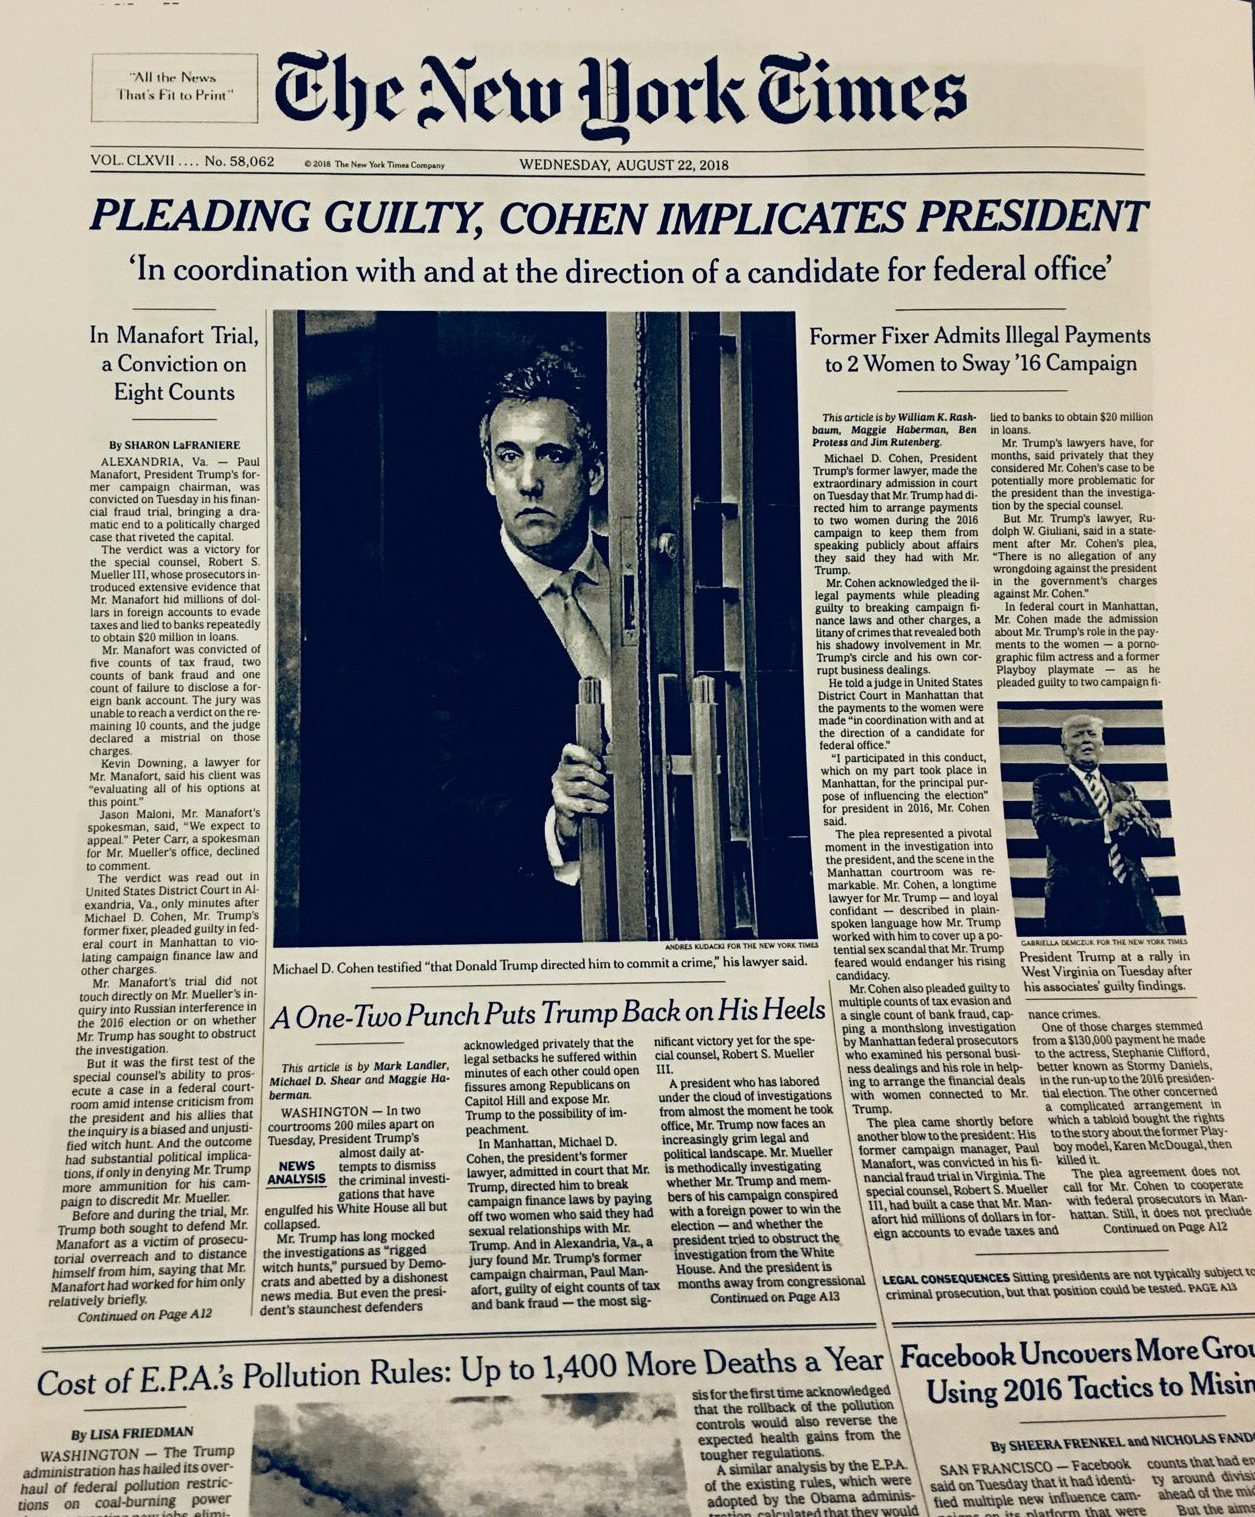 michael cohen nytimes twitter 8 21 2017